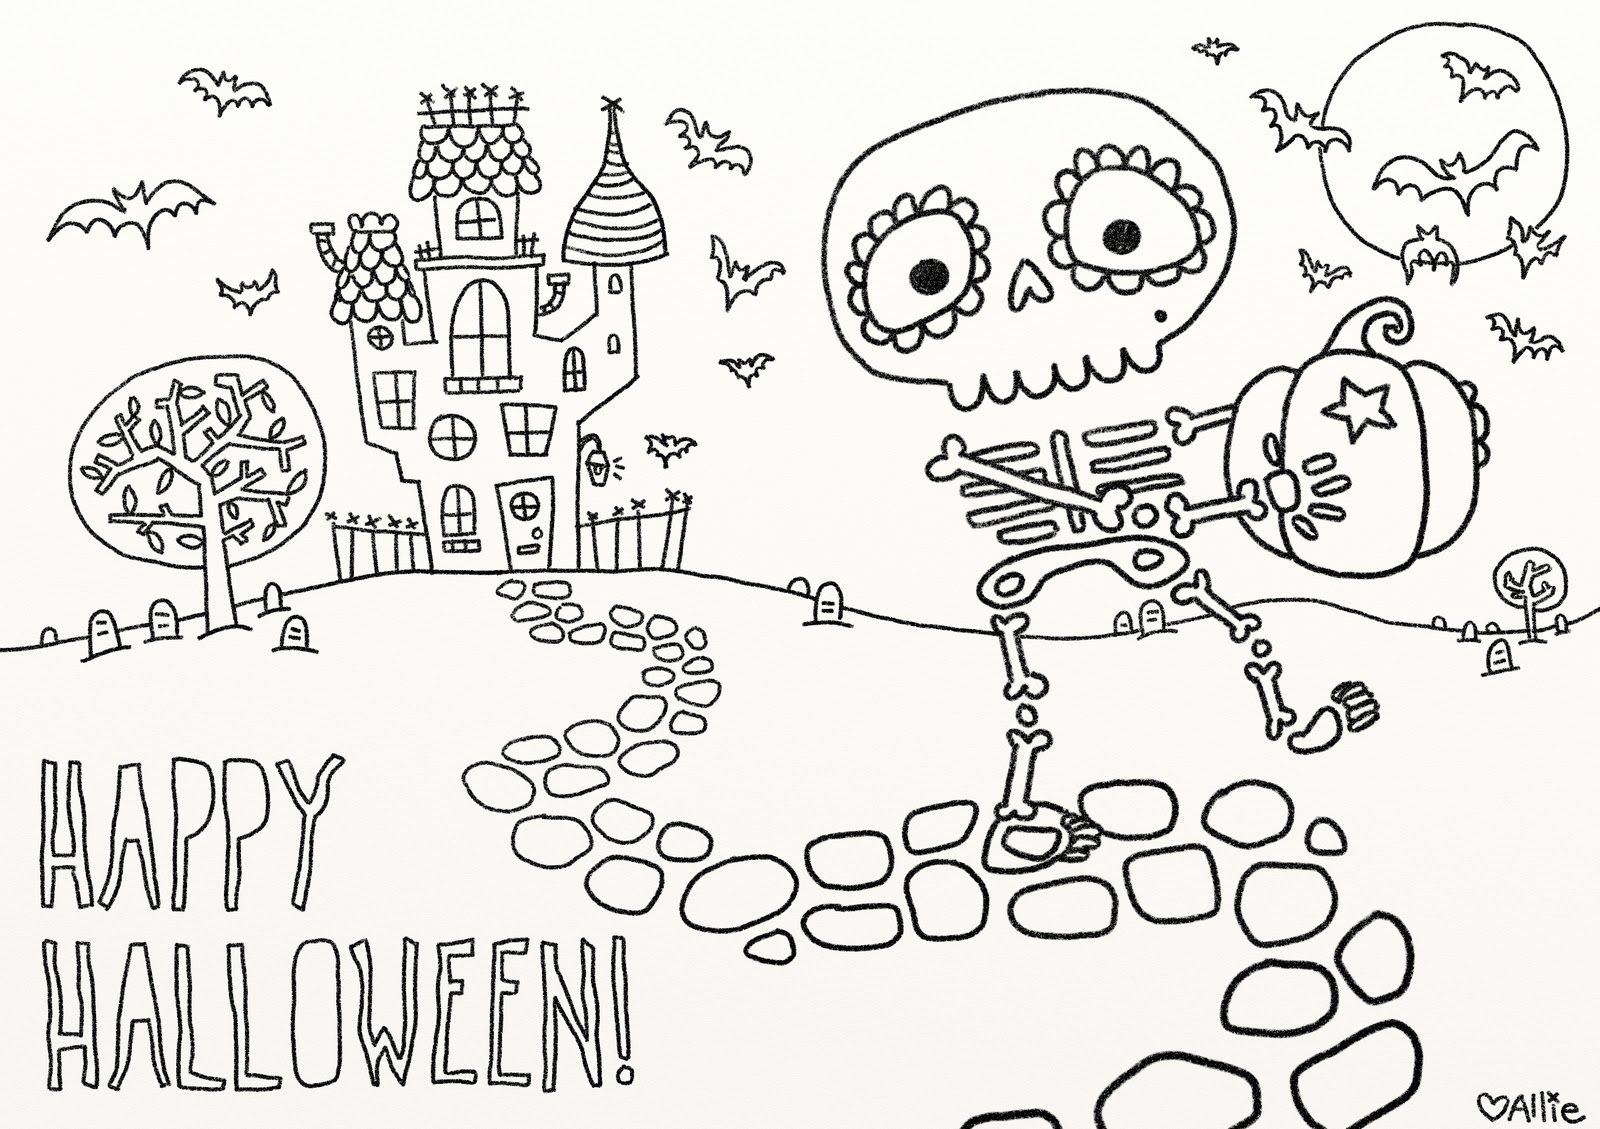 minions coloring pages halloween skeleton - photo#26